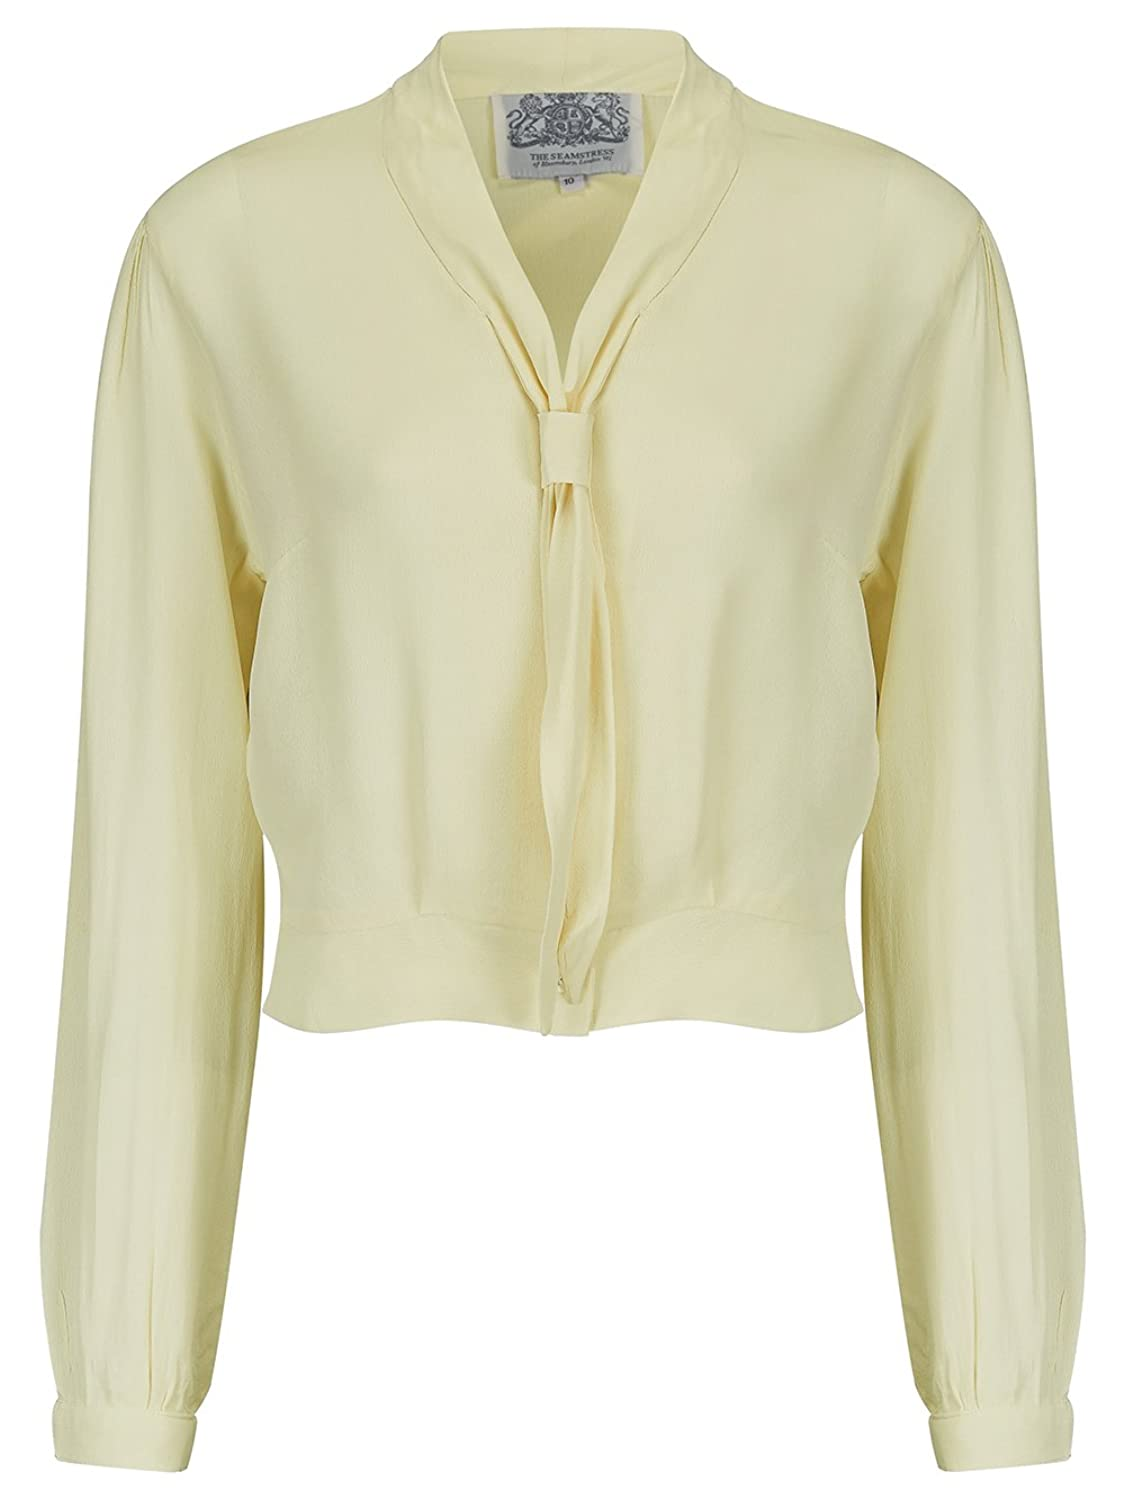 1920s Blouses & Shirts History 1940s Authentic Vintage Inspired Bonnie Blouse with Long Sleeve in Cream by The Seamstress of Bloomsbury £39.00 AT vintagedancer.com